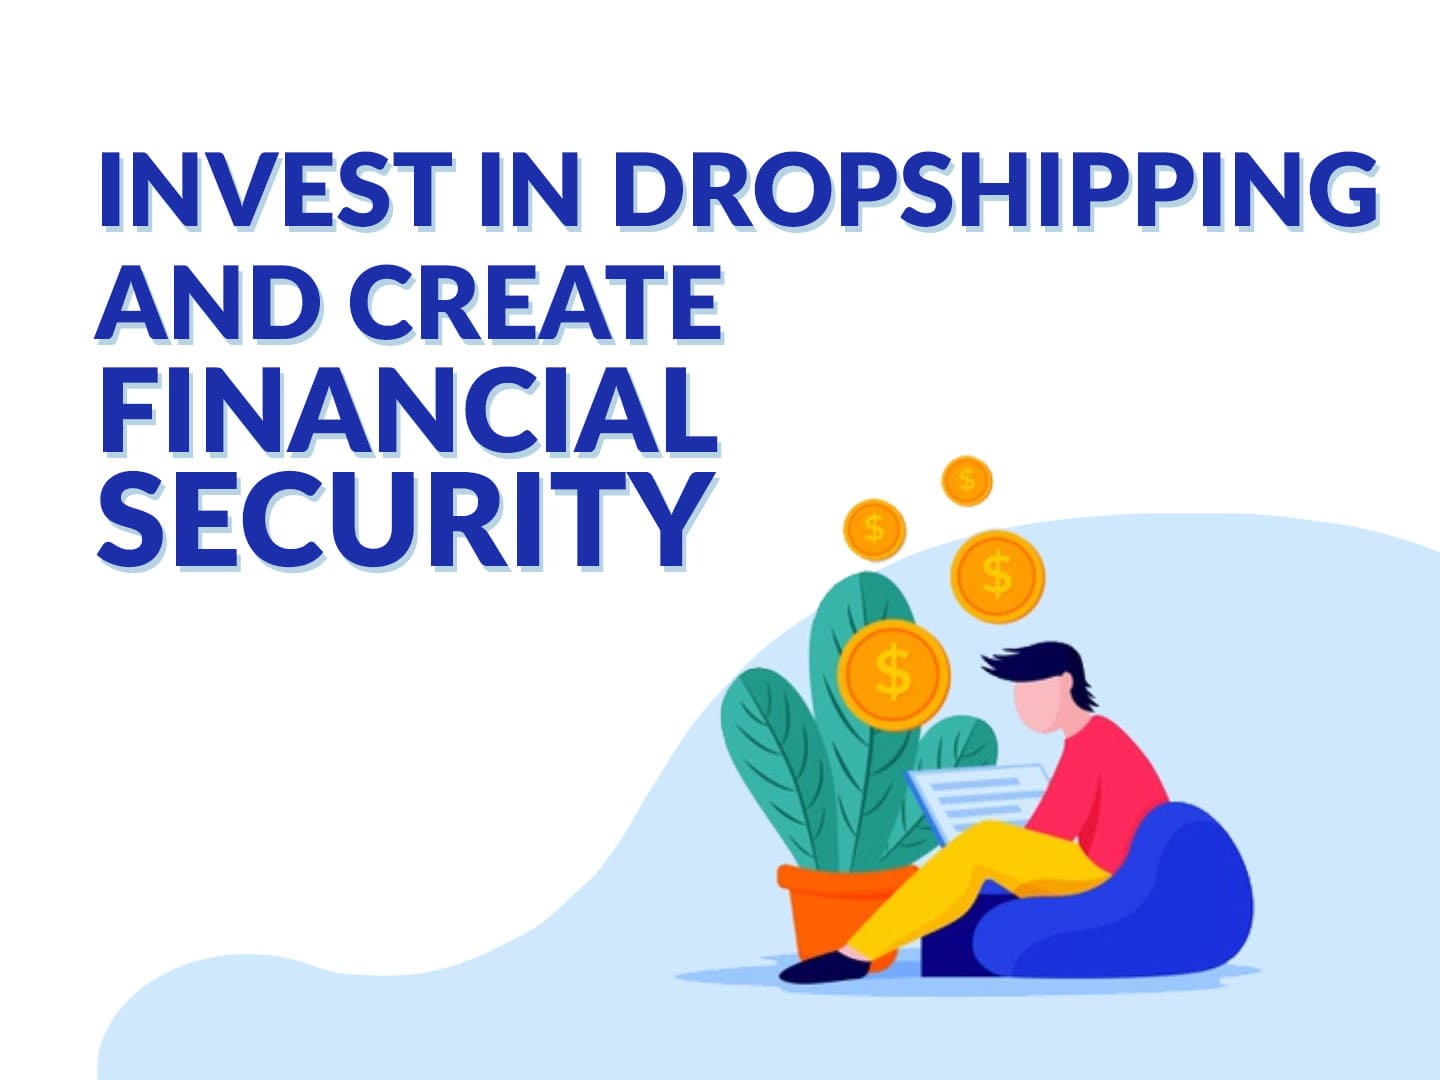 INVEST-IN-DROPSHIPPING-AND-CREATE-FINANCIAL-SECURITY2